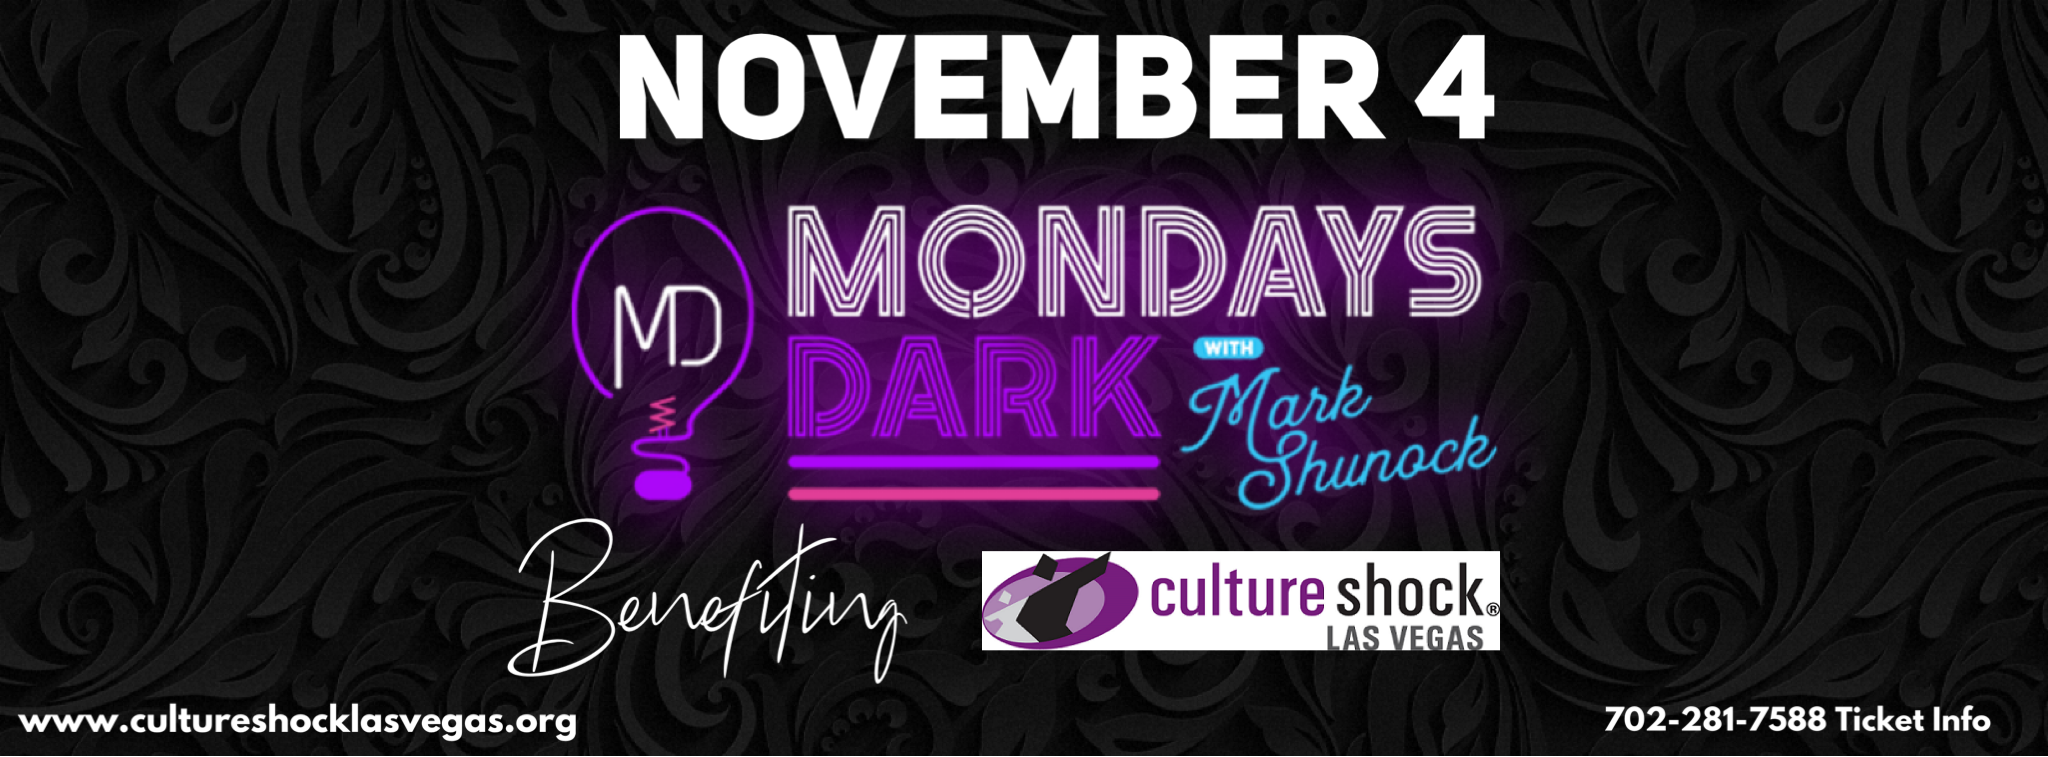 Nov 4, Mondays Dark benefiting Culture Shock